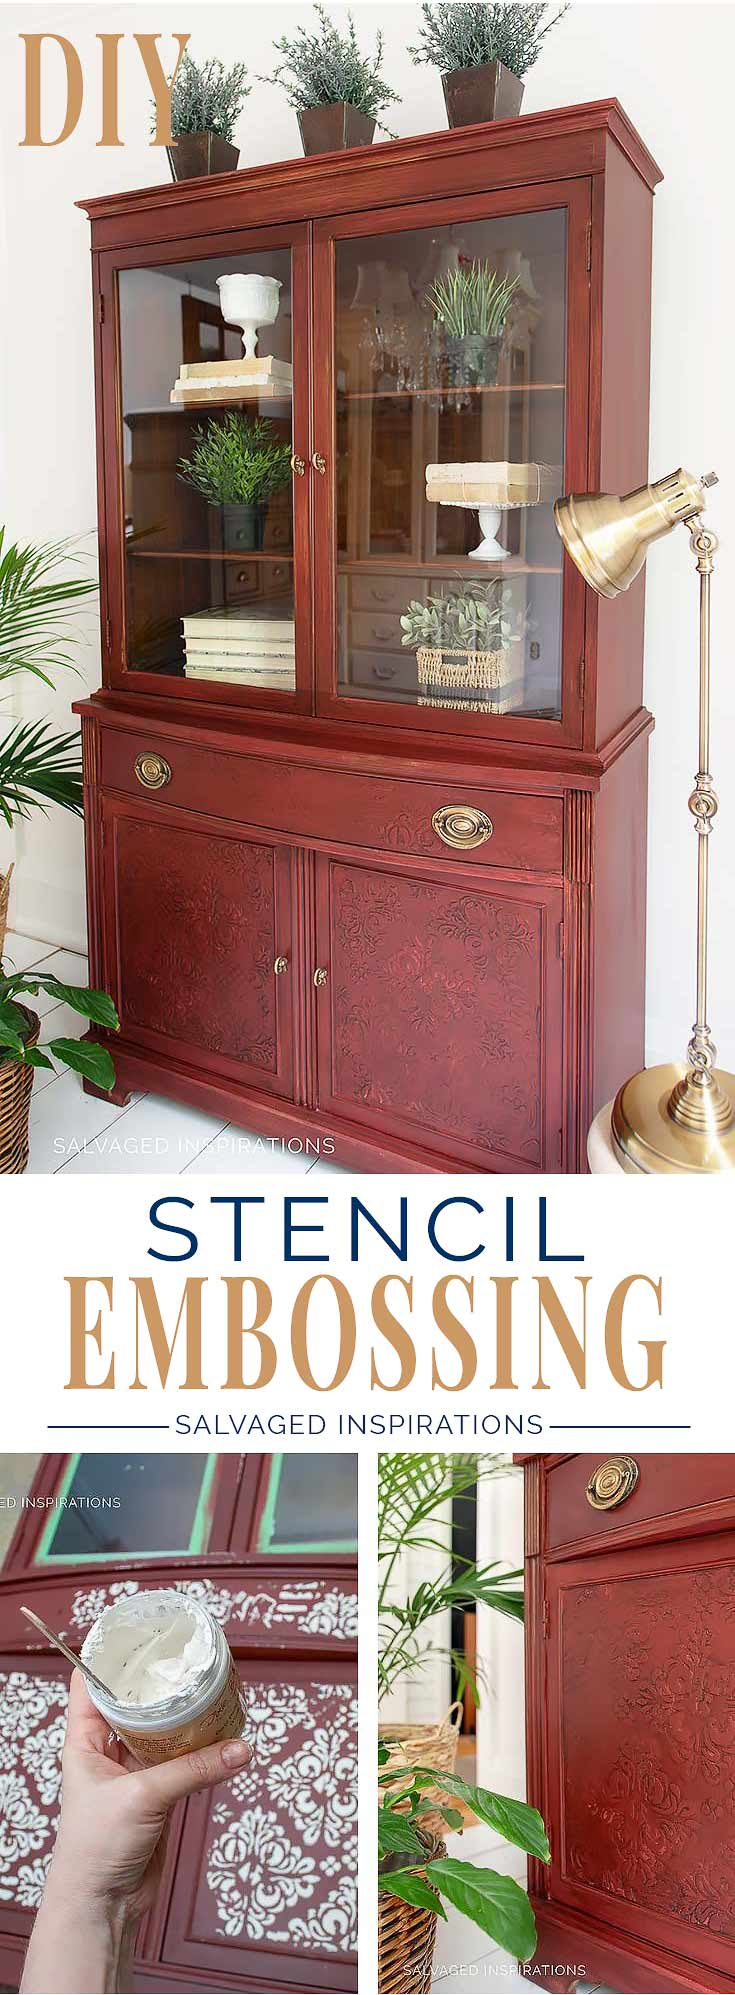 Stencil Embossing - Salvaged Inspirations